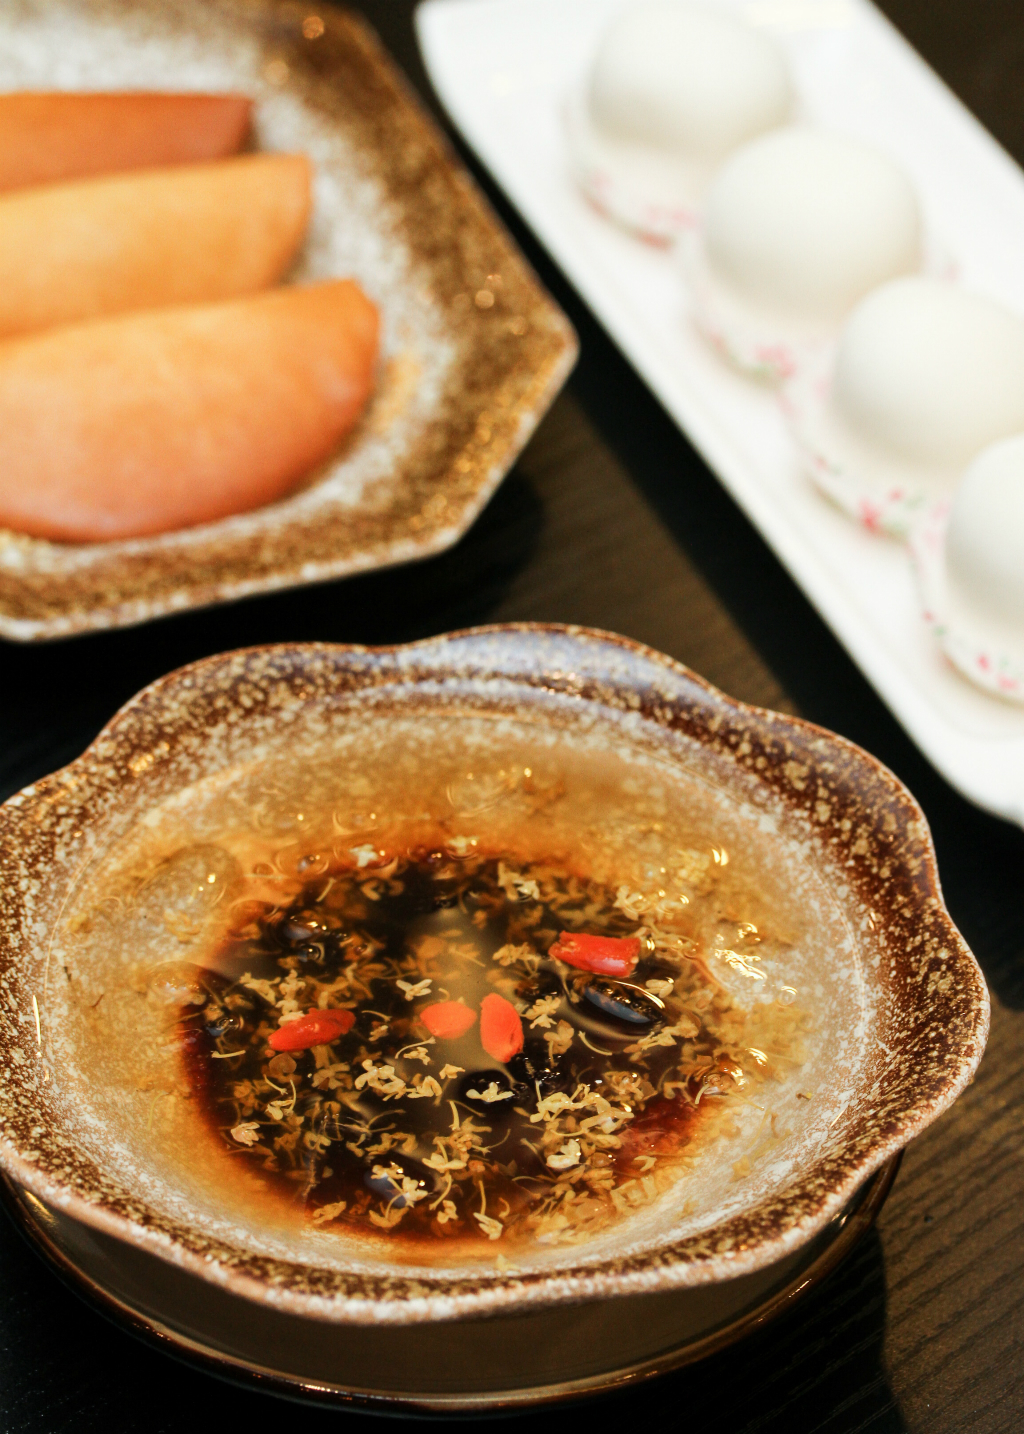 Tian Bao Szechuan Kitchen: Premium Black Sugar Ice Jelly with Osmanthus